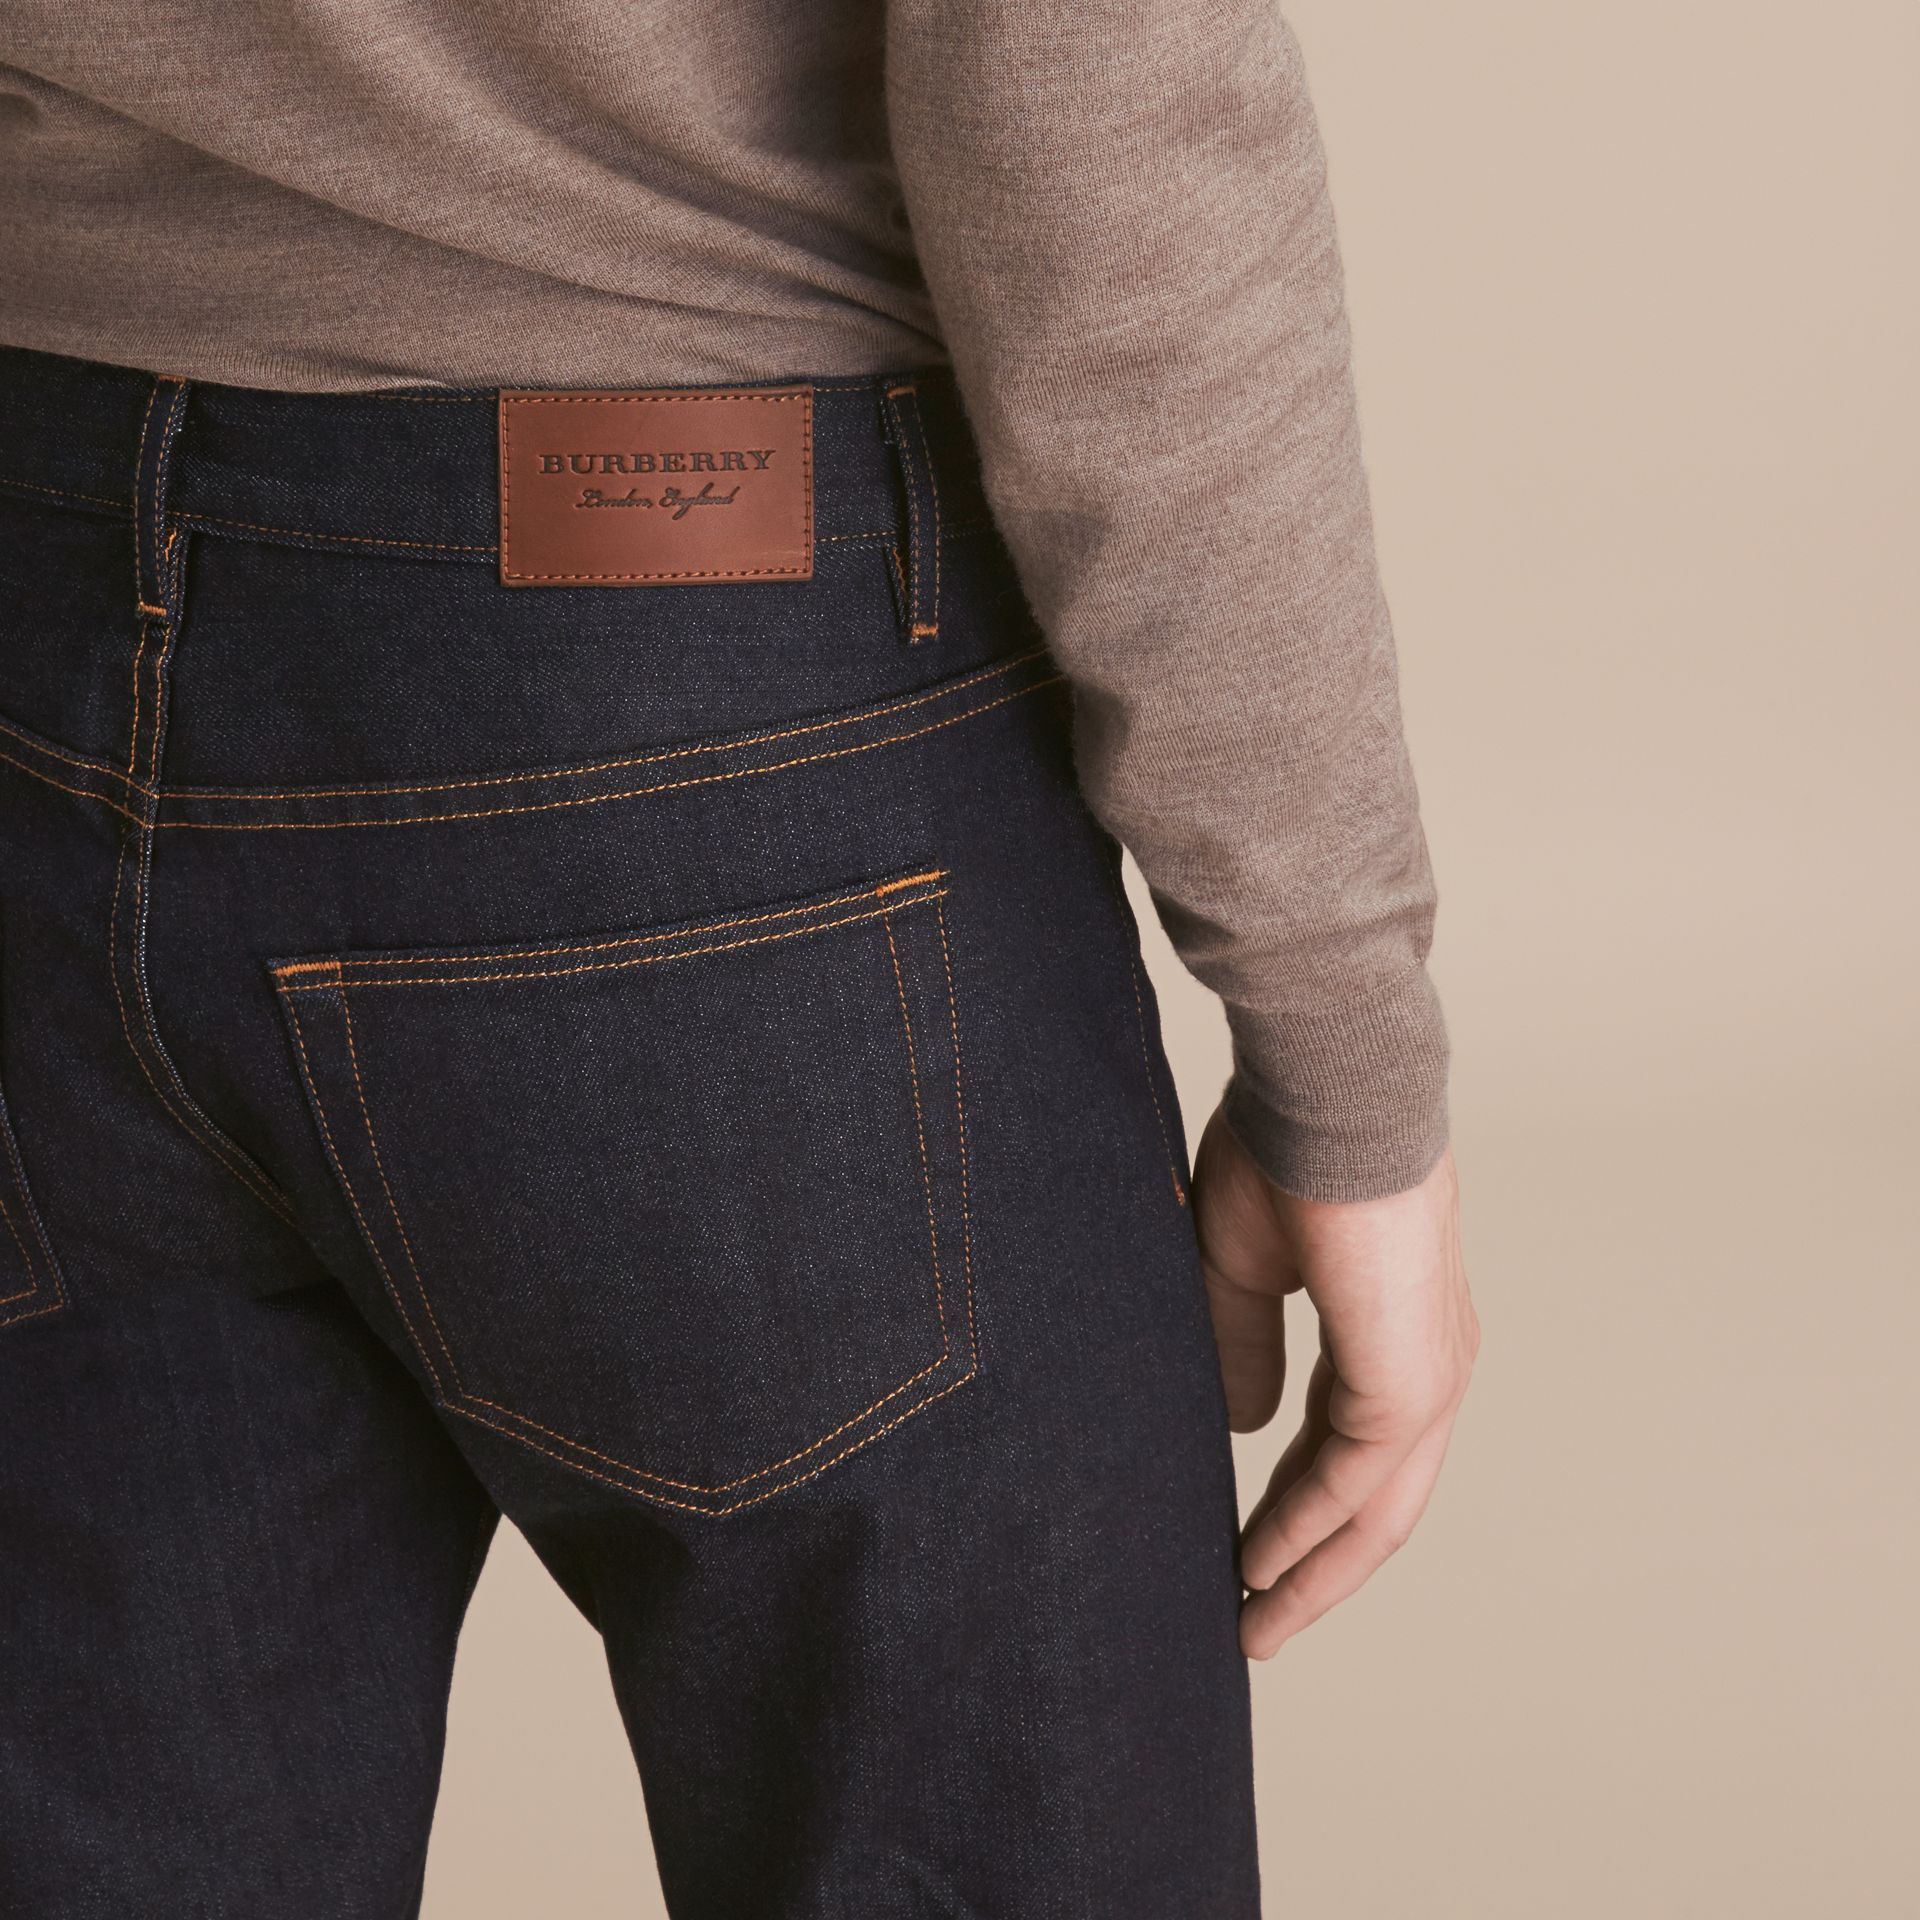 Relaxed Fit Comfort Stretch Indigo Japanese Denim Jeans in Dark - Men | Burberry - gallery image 6